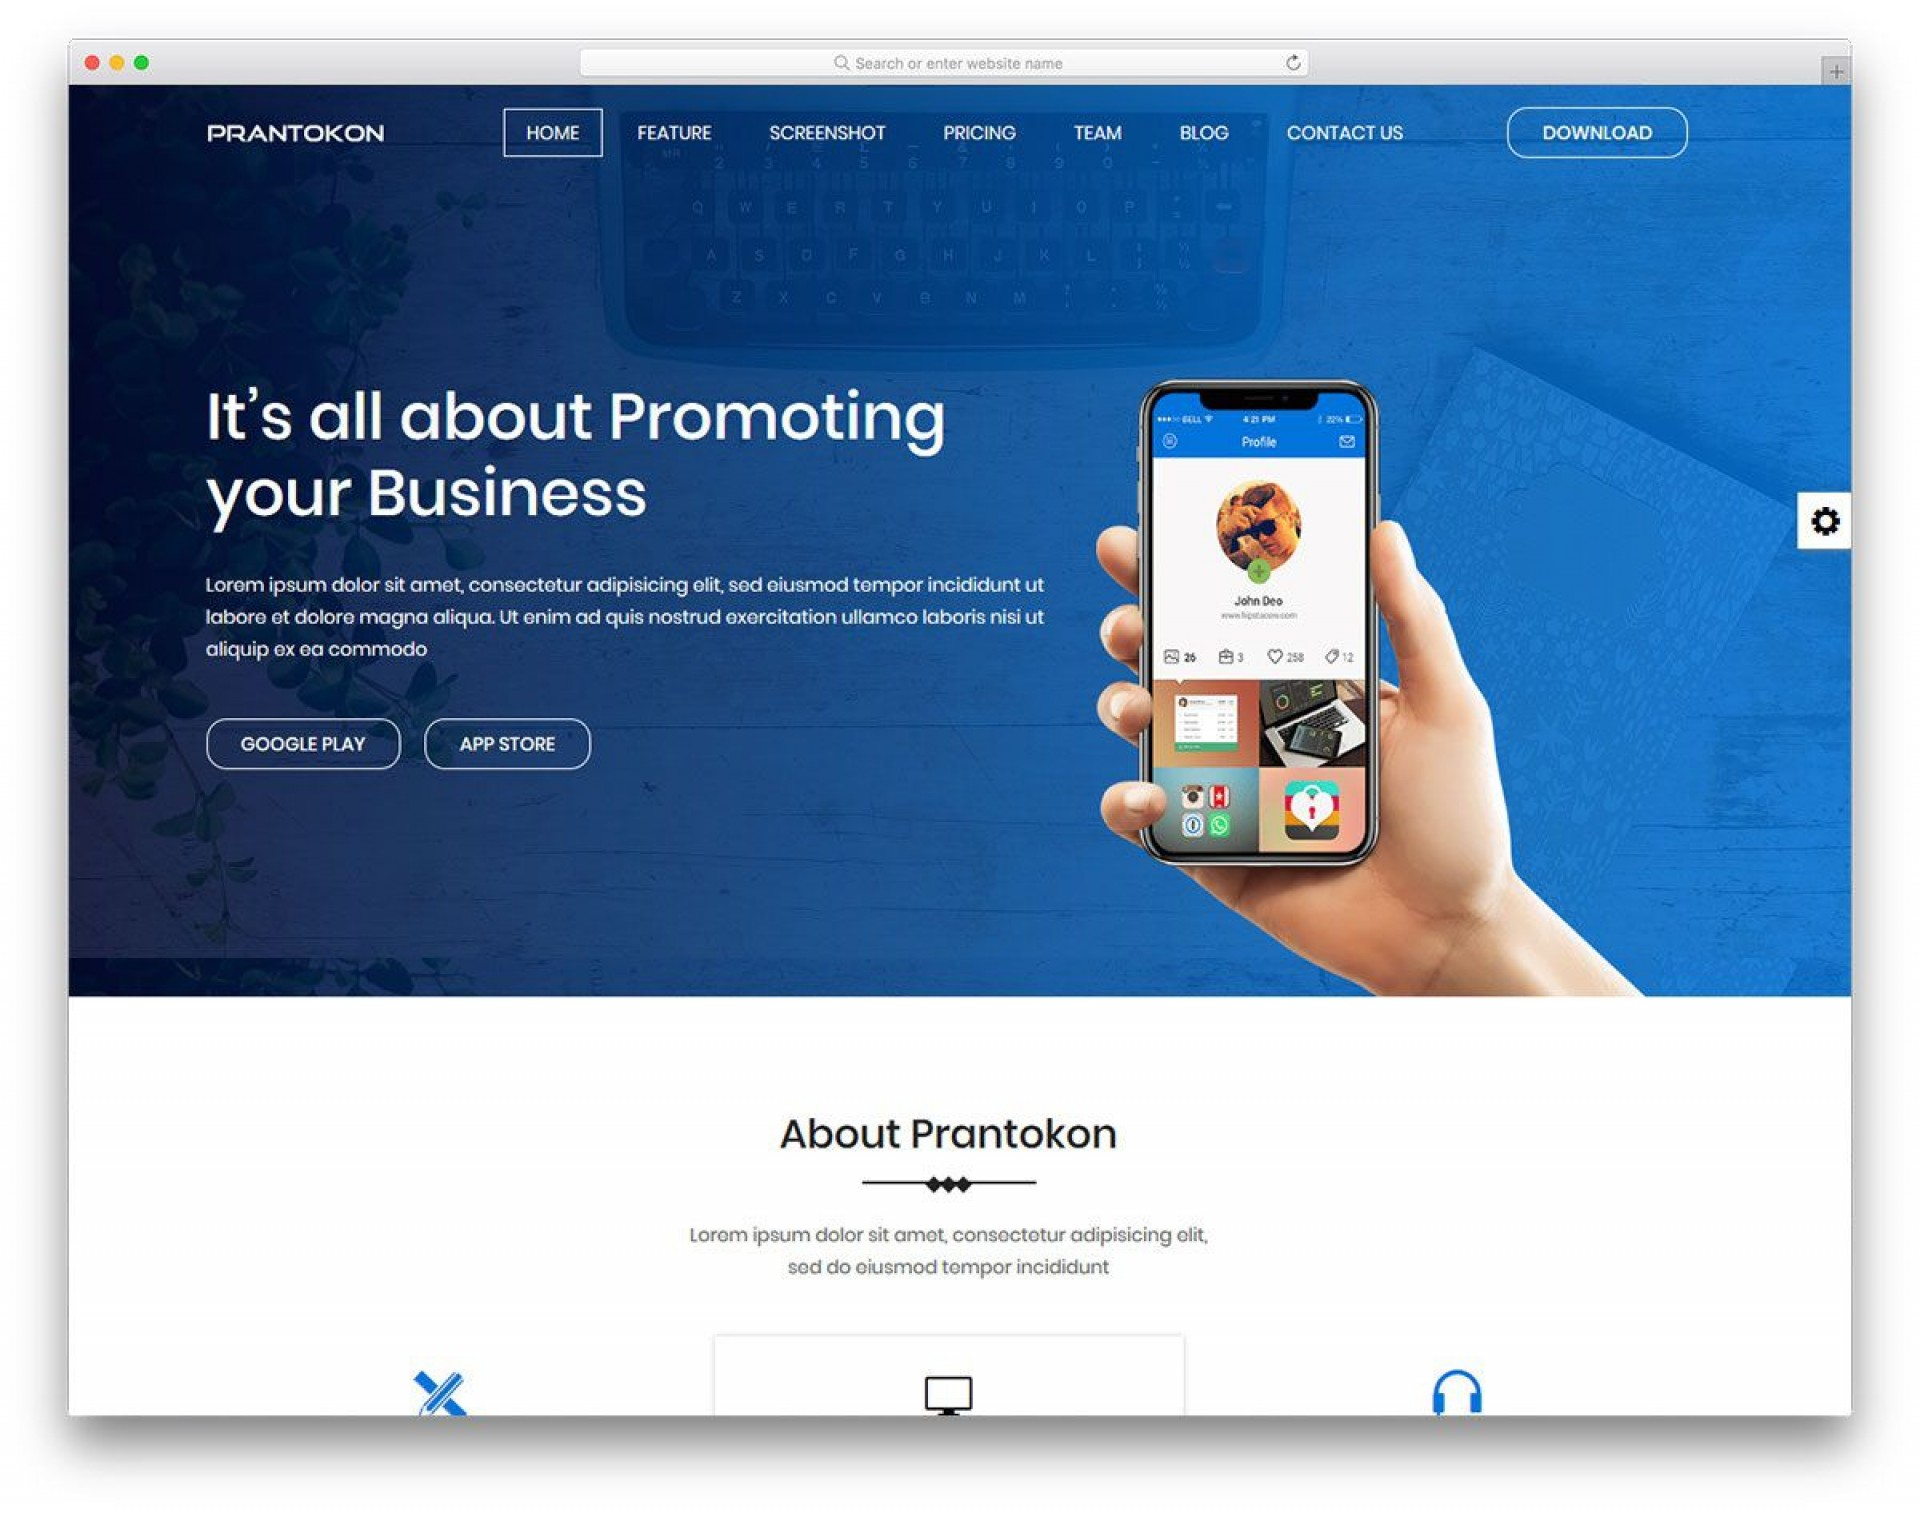 006 Formidable Download Free Website Template Picture  Templates Dynamic In Php With Login Page Bootstrap 41920